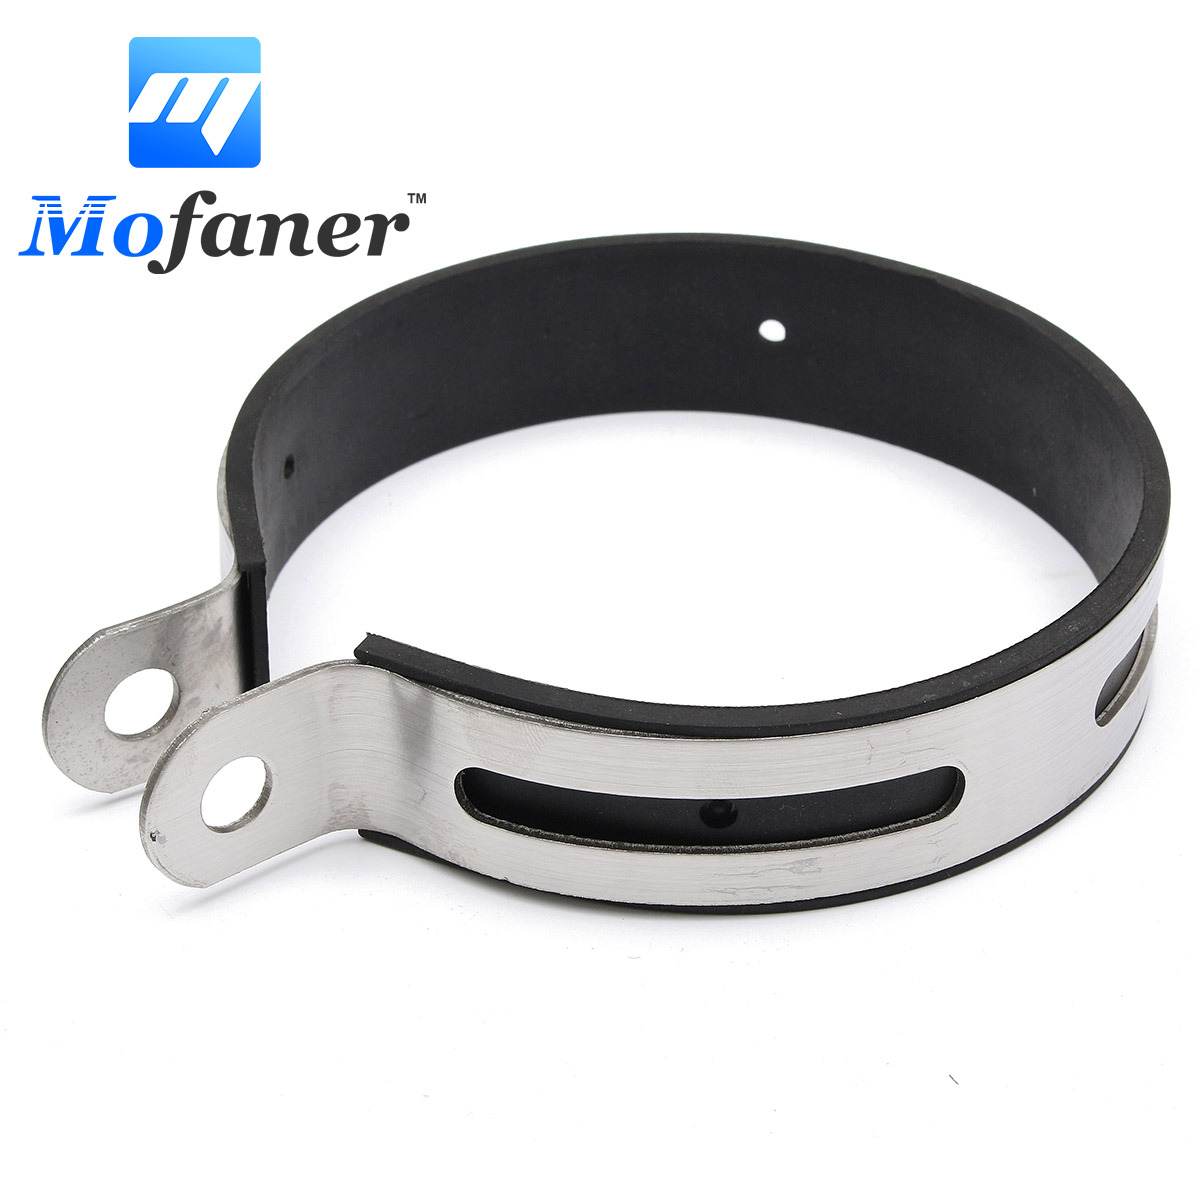 11cm Motorcycle Exhaust Muffler Silencer Bracket Hanger Clamp Strap Mount Bracket Stainless Steel